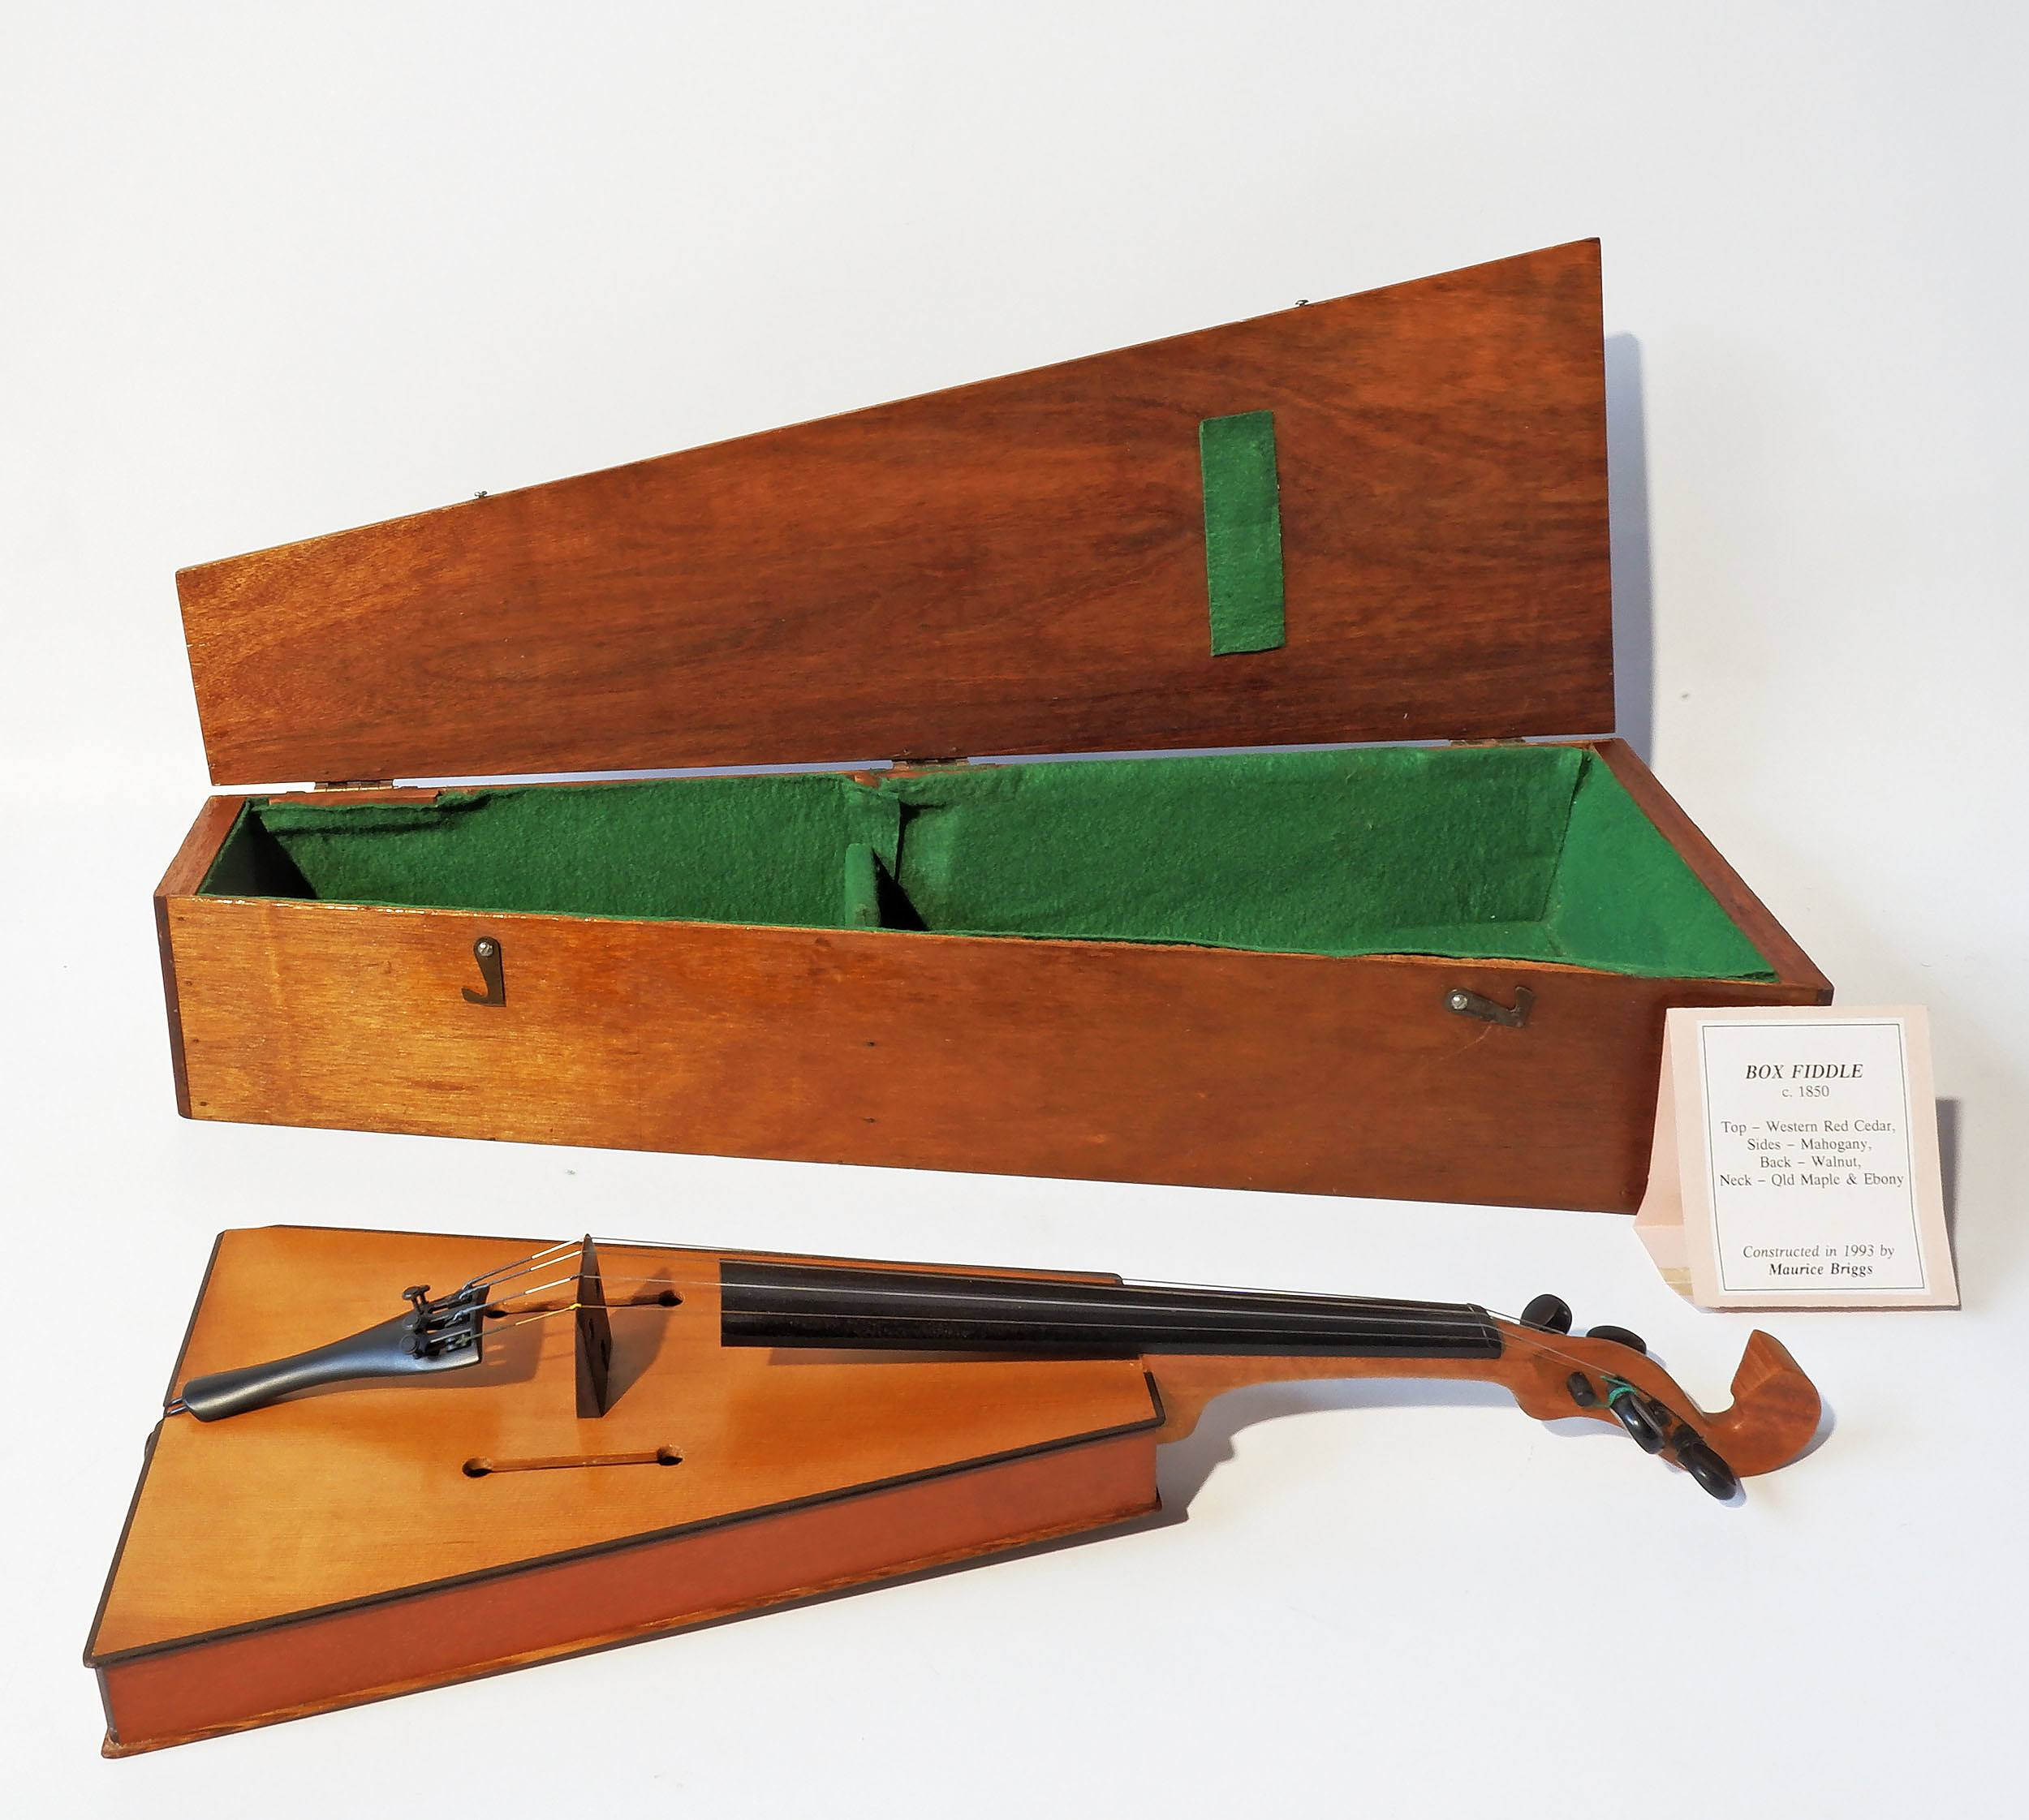 'Slim Dusty Autographed Bespoke Box Fiddle By Luthier Maurice Briggs (b.1930) Brisbane 1993'